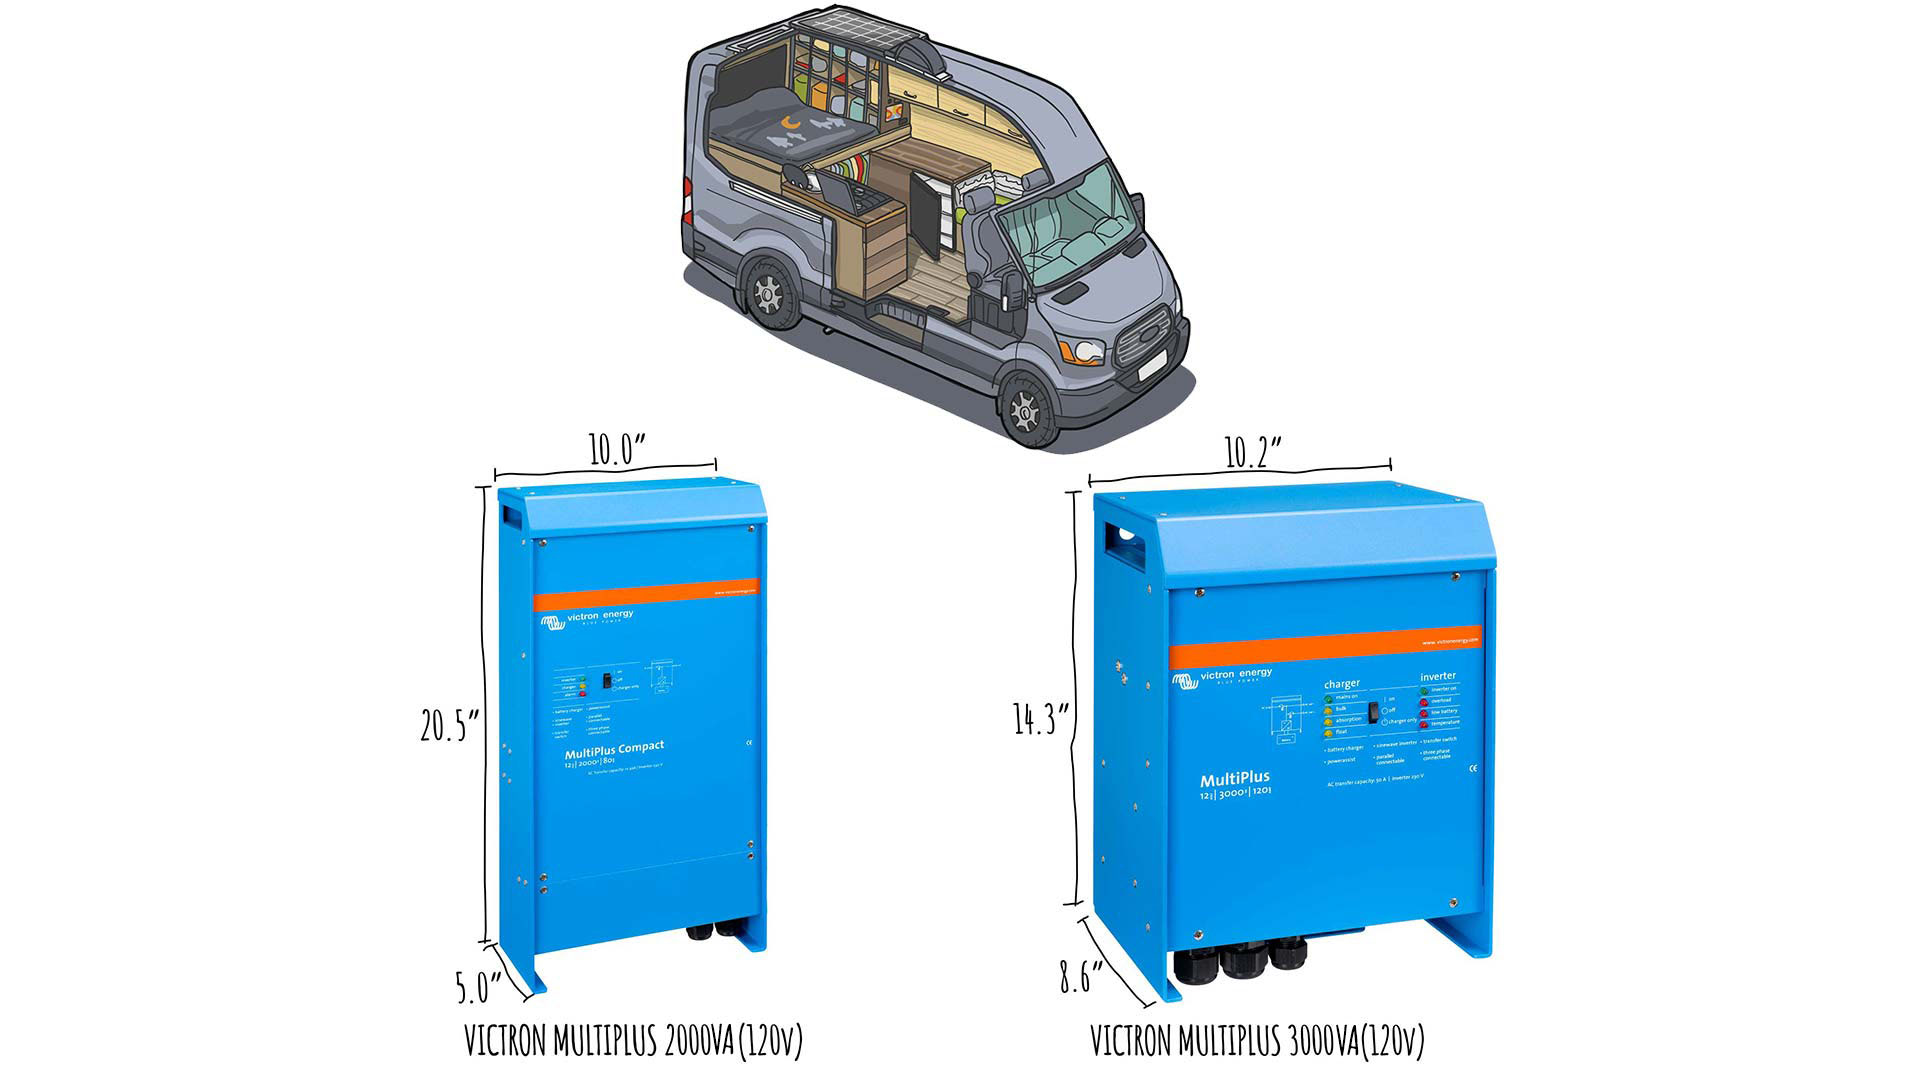 Victron-Multiplus-Inverter-Charger-2KVA-3KVA-Heading-(1920px)